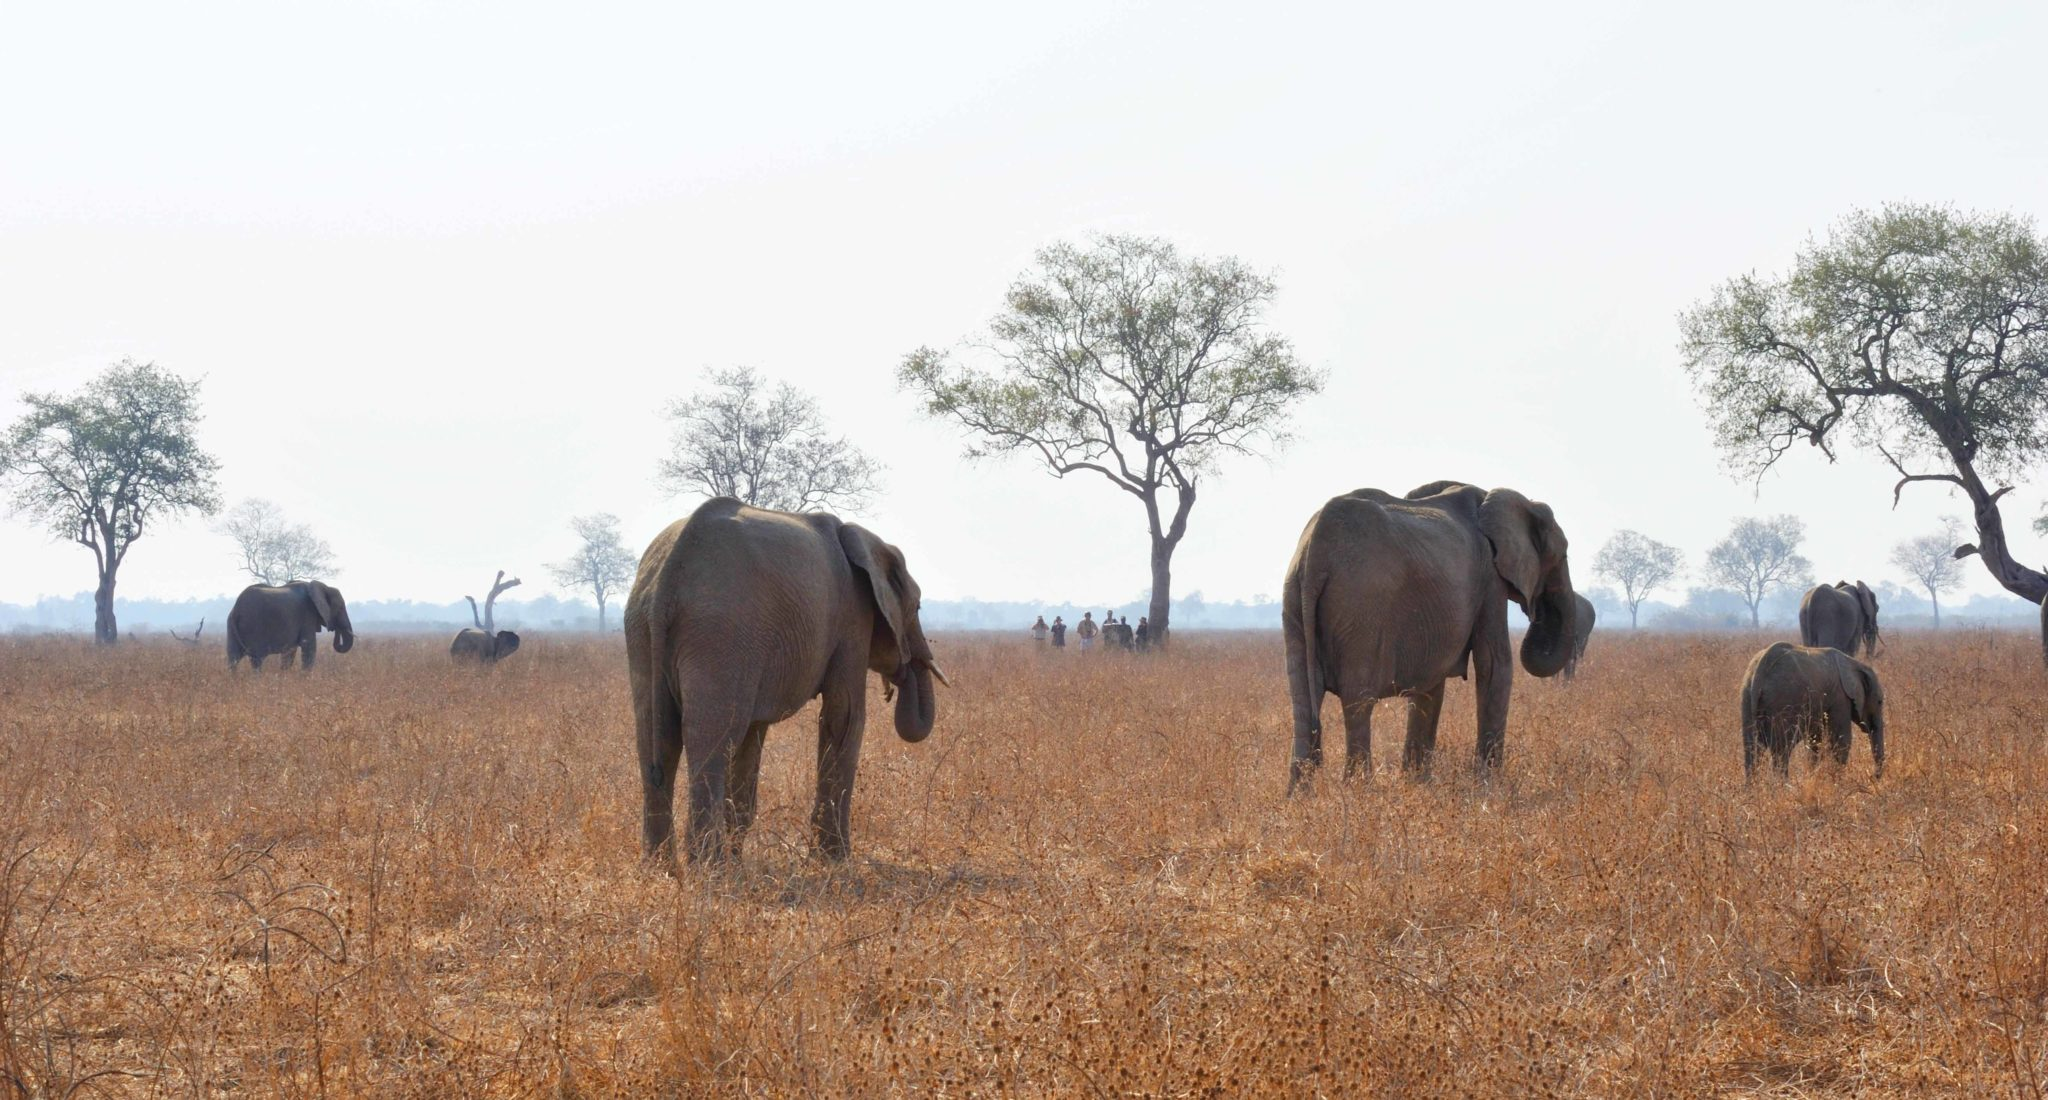 zambia luangwa valley elephant wlaking safari tracking